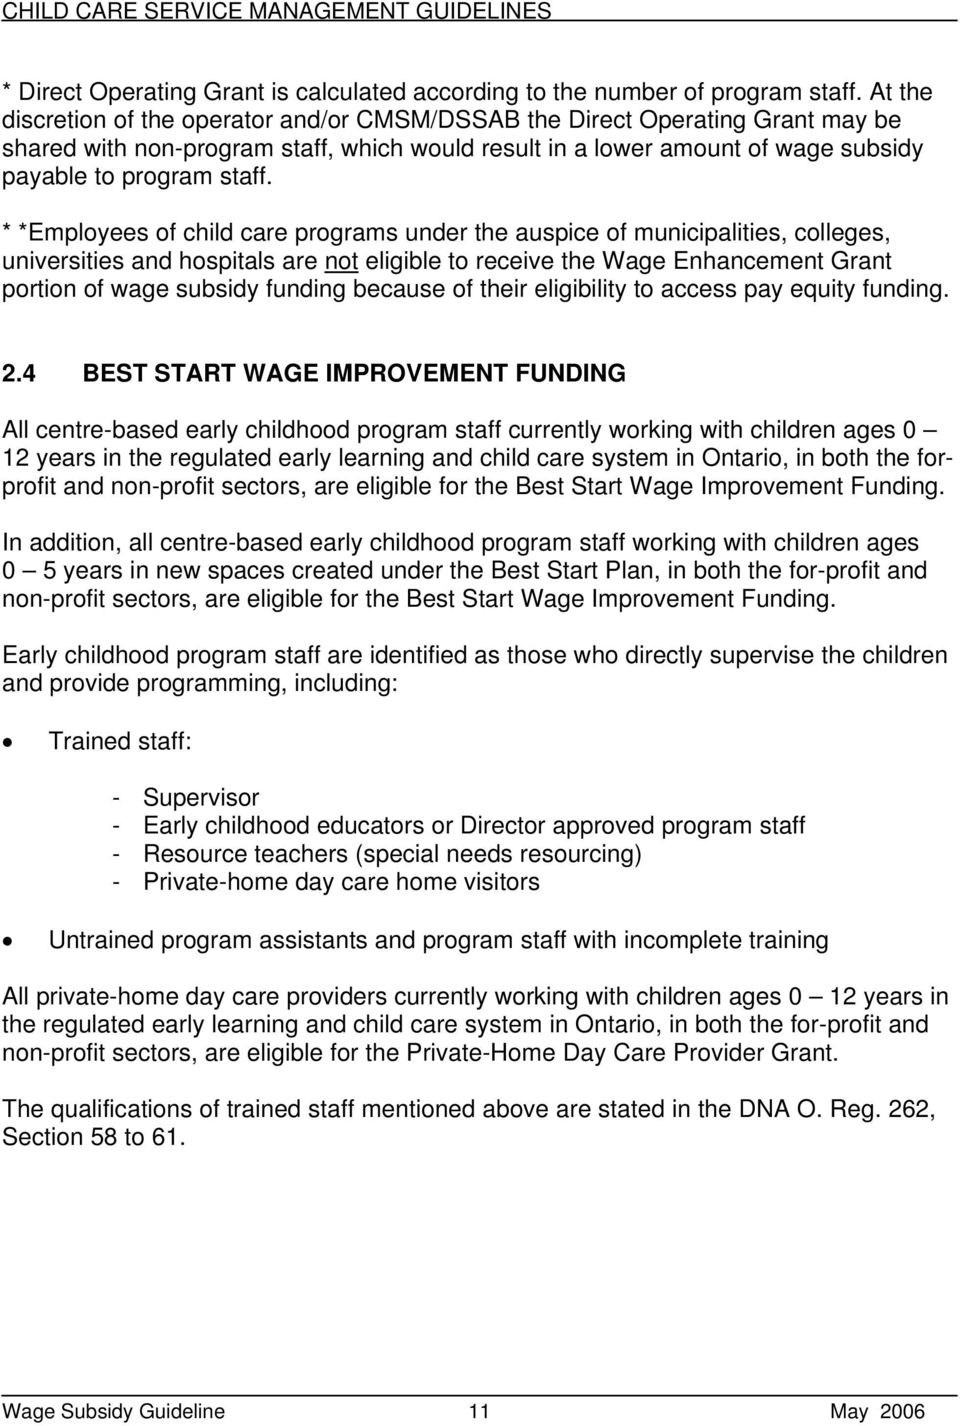 * *Employees of child care programs under the auspice of municipalities, colleges, universities and hospitals are not eligible to receive the Wage Enhancement Grant portion of wage subsidy funding